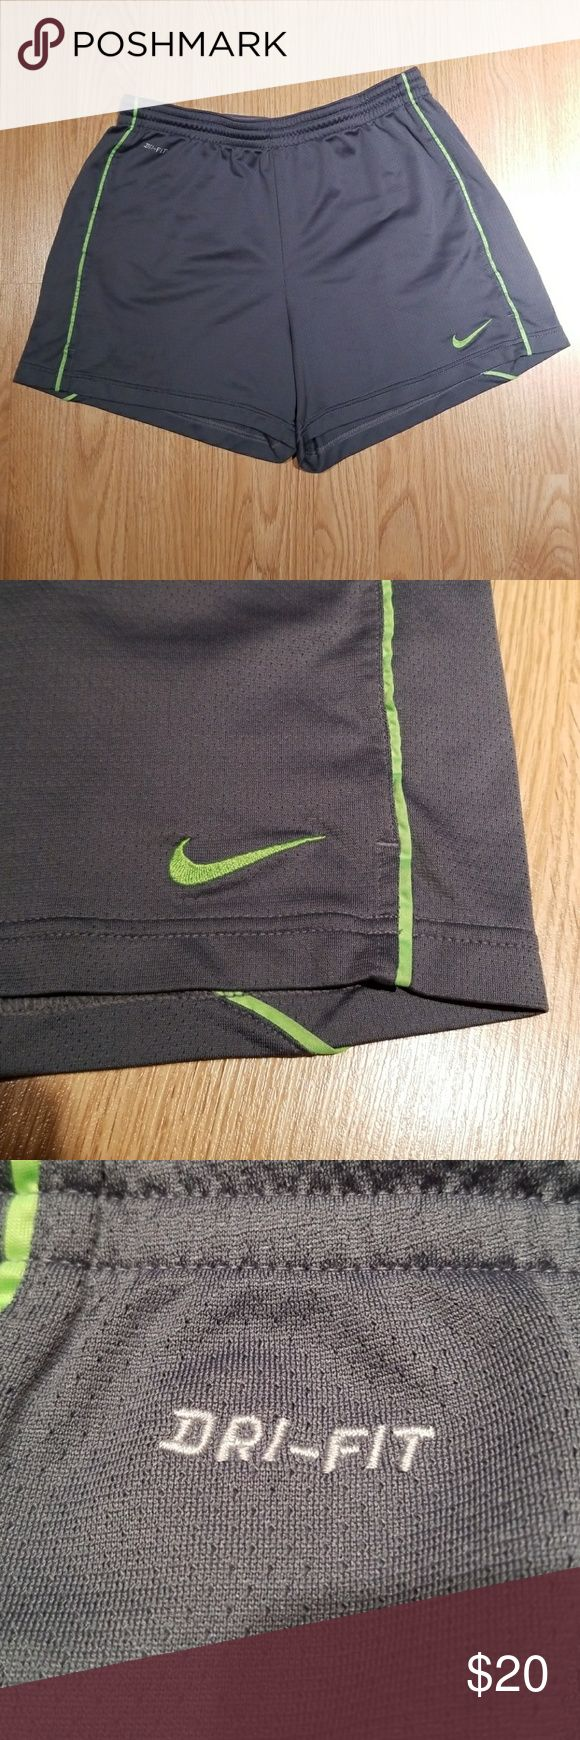 NIKE DRI FIT Grey Neon Green Shorts Gym Large I have here this super cute comfortable grey and neon green athletic shorts from NIKE DRI FIT and is a size Large. These are great for the gym or just to lounge around in at home. There are no / low signs of wear, no stains or rips.  I LOVE OFFERS! Sorry no trades. Bundle to save. Nike Shorts